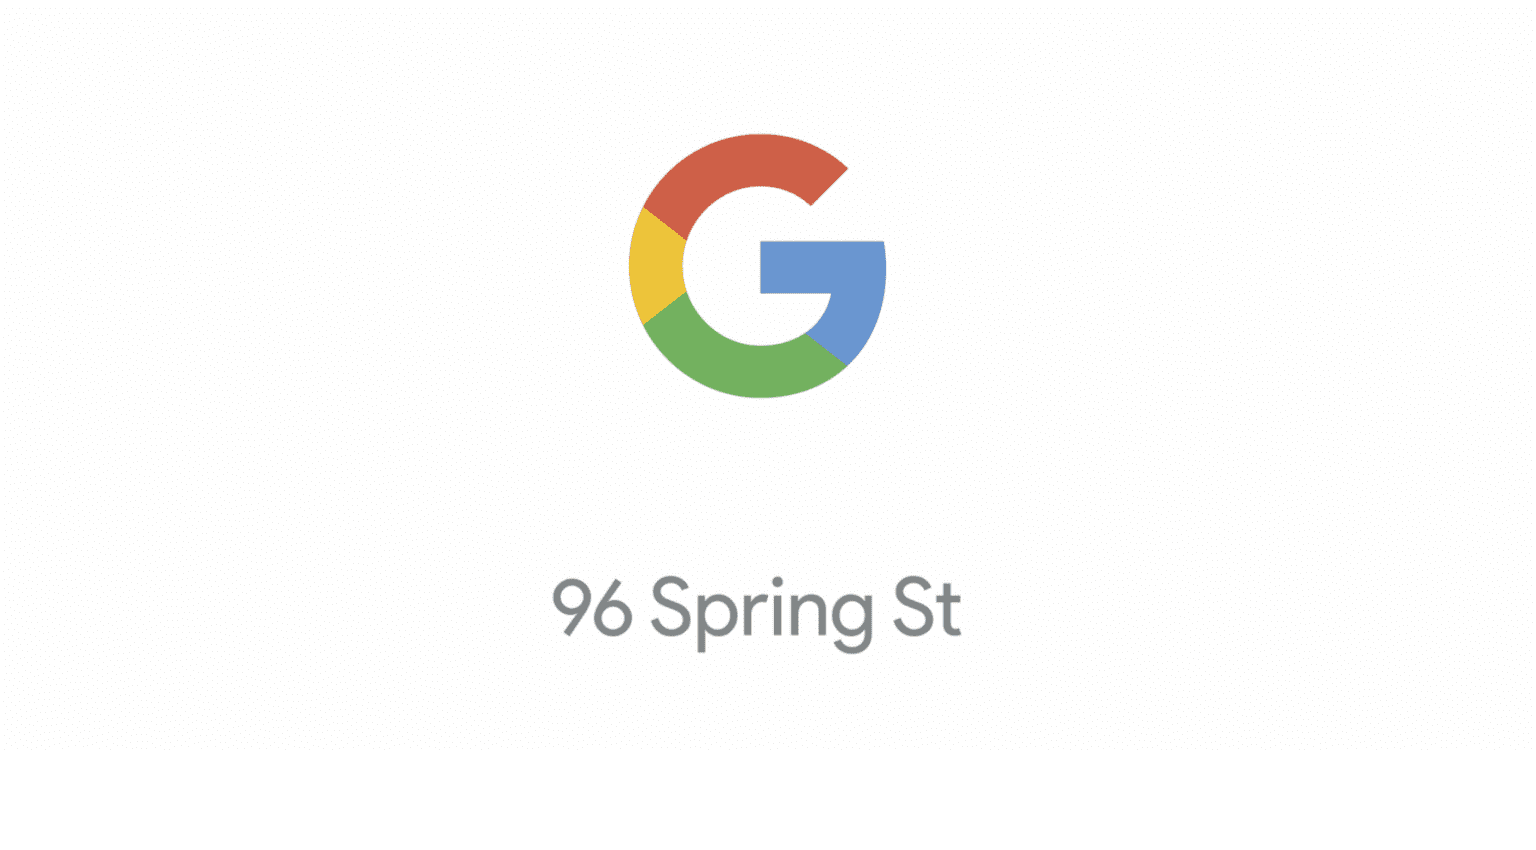 Made by Google - 96 Spring